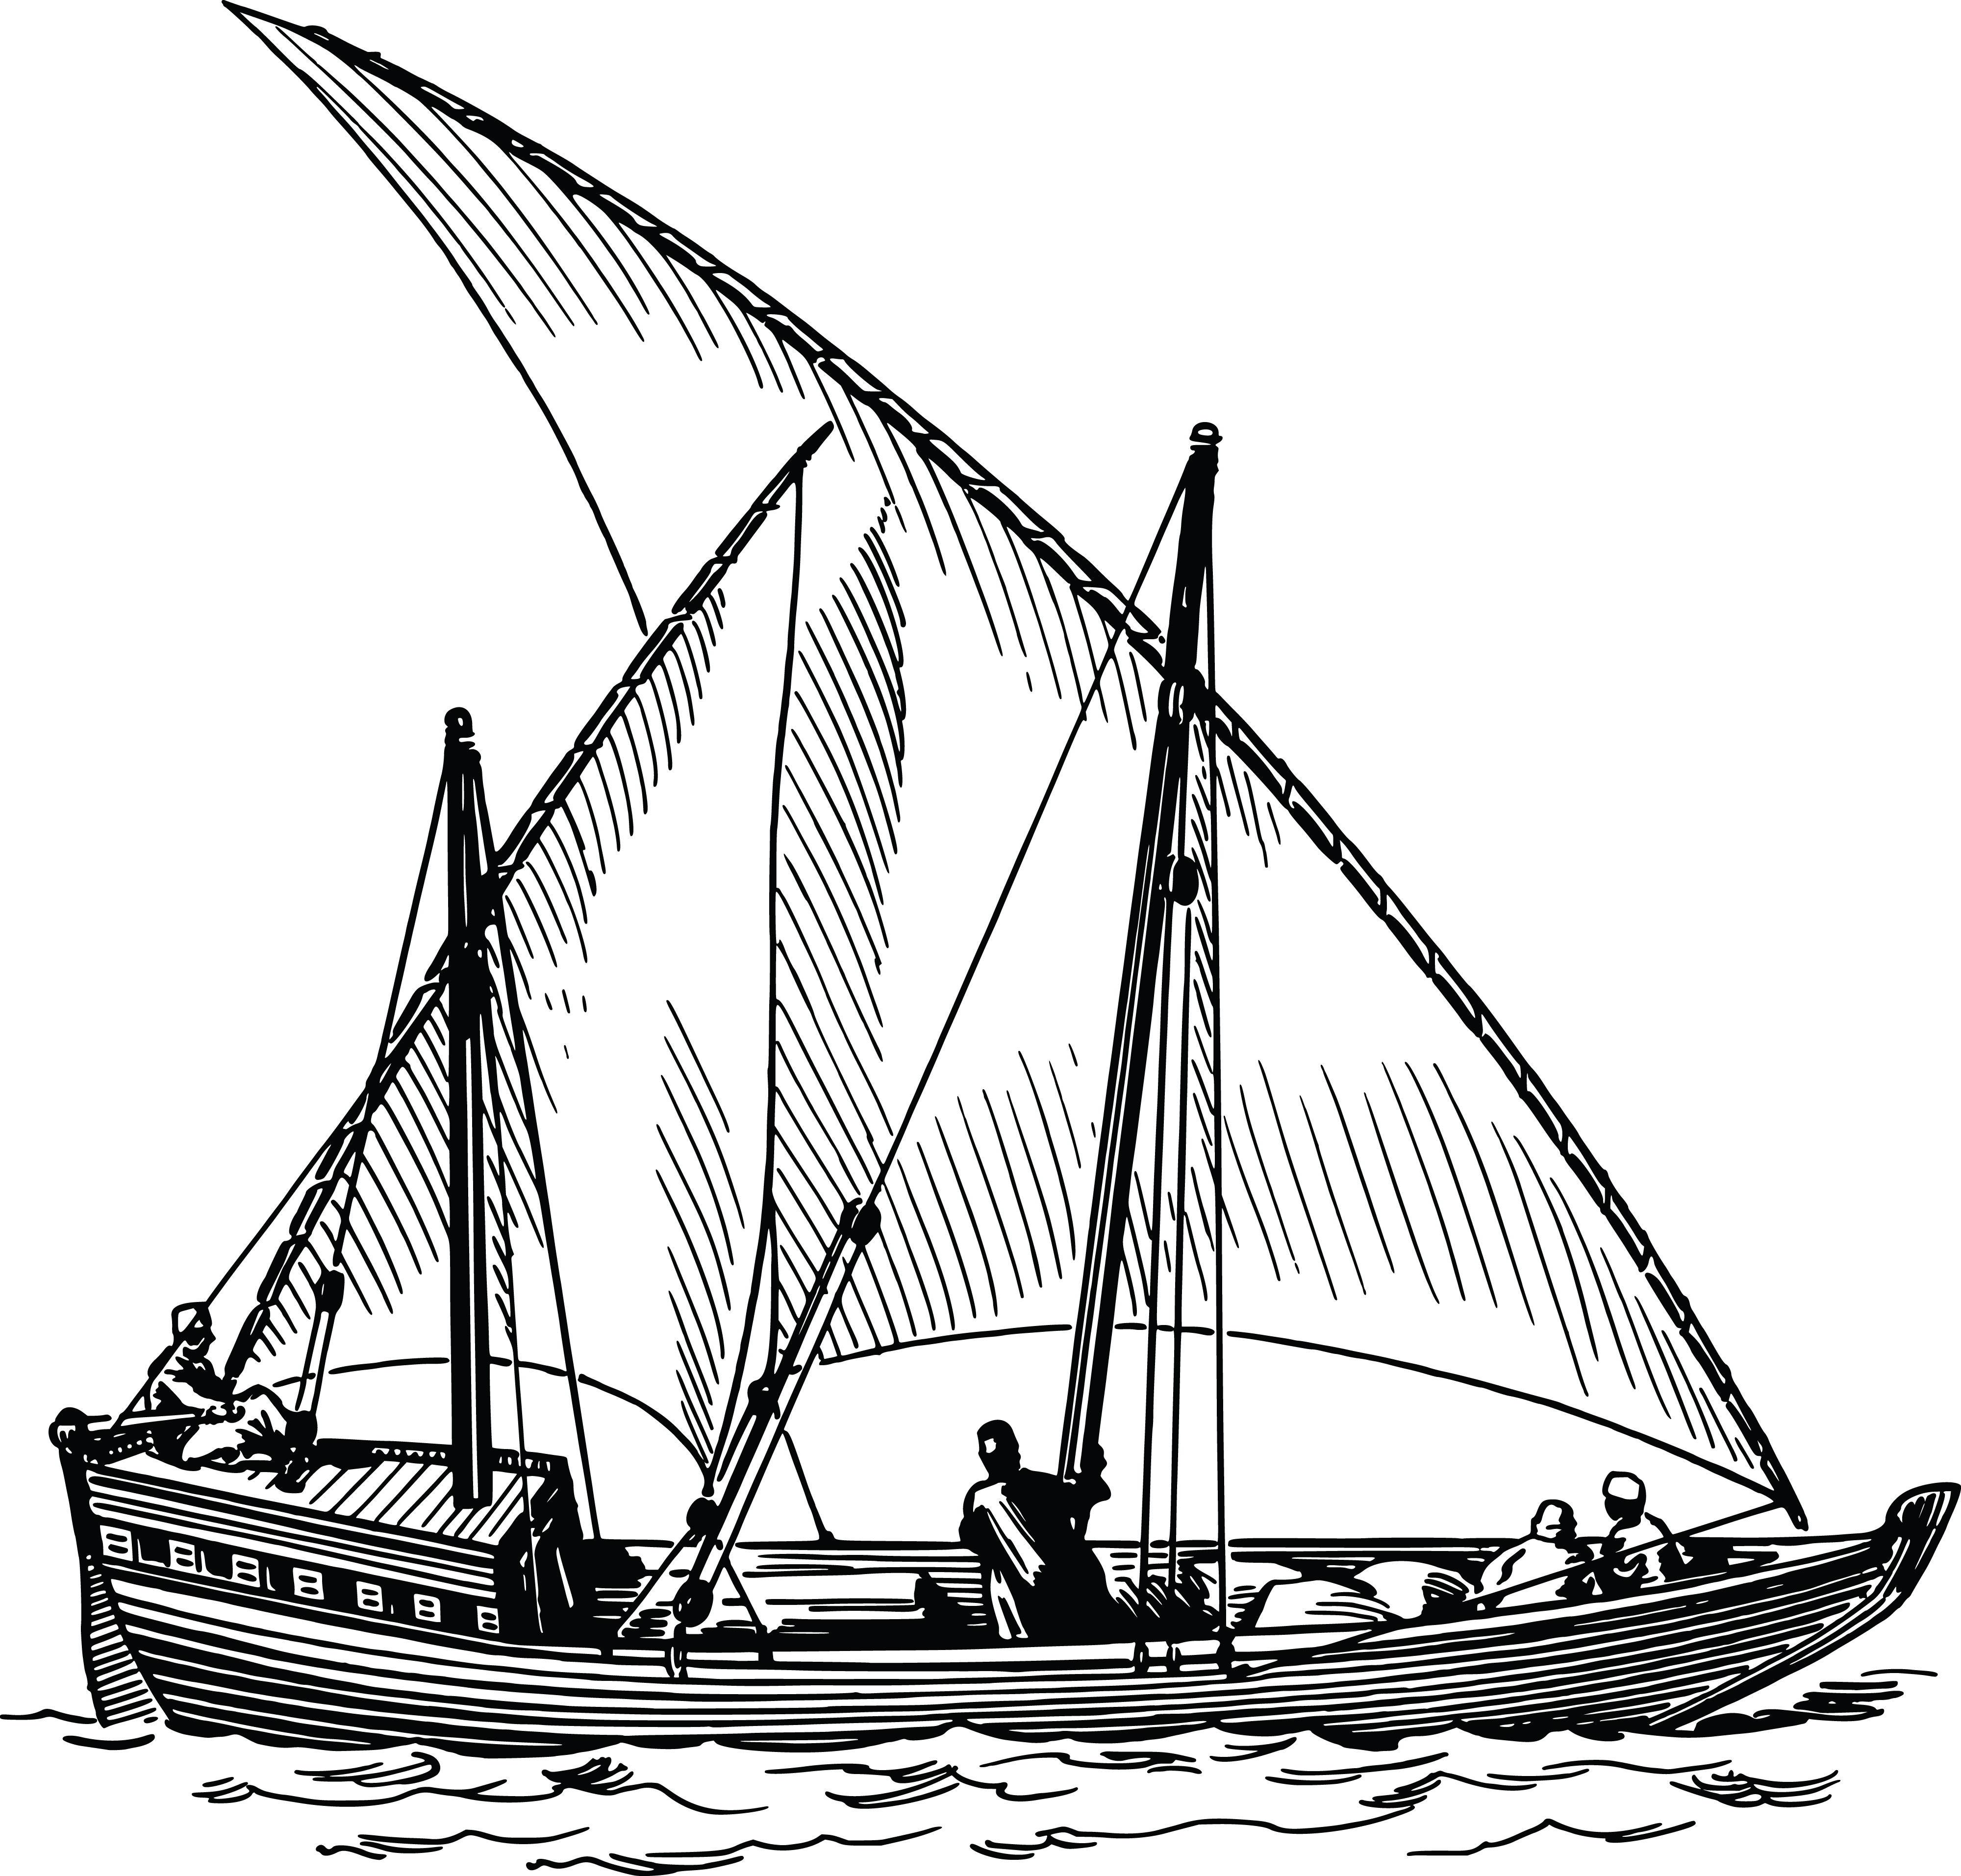 Free Clipart Of a sailing ship.